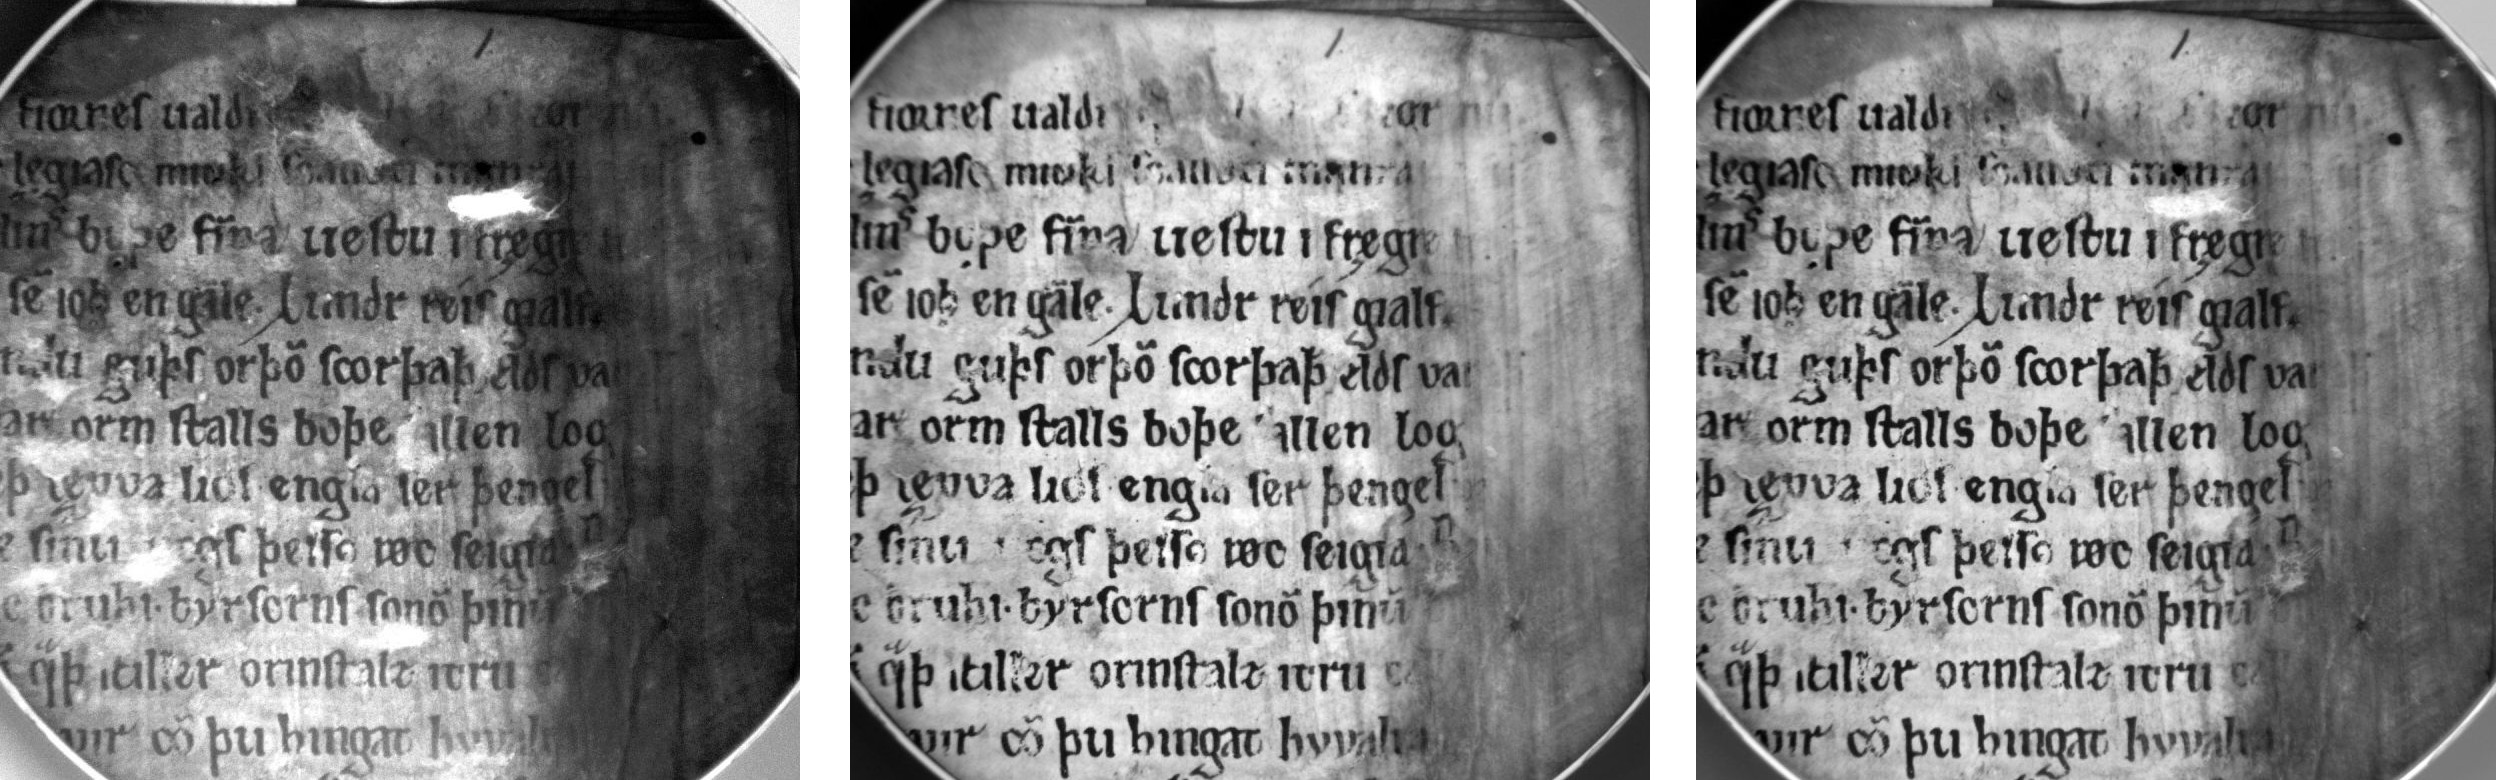 Read more about: AM 673 b 4to: The Oldest manuscript of medieval Scandinavia's most prolific poetic form